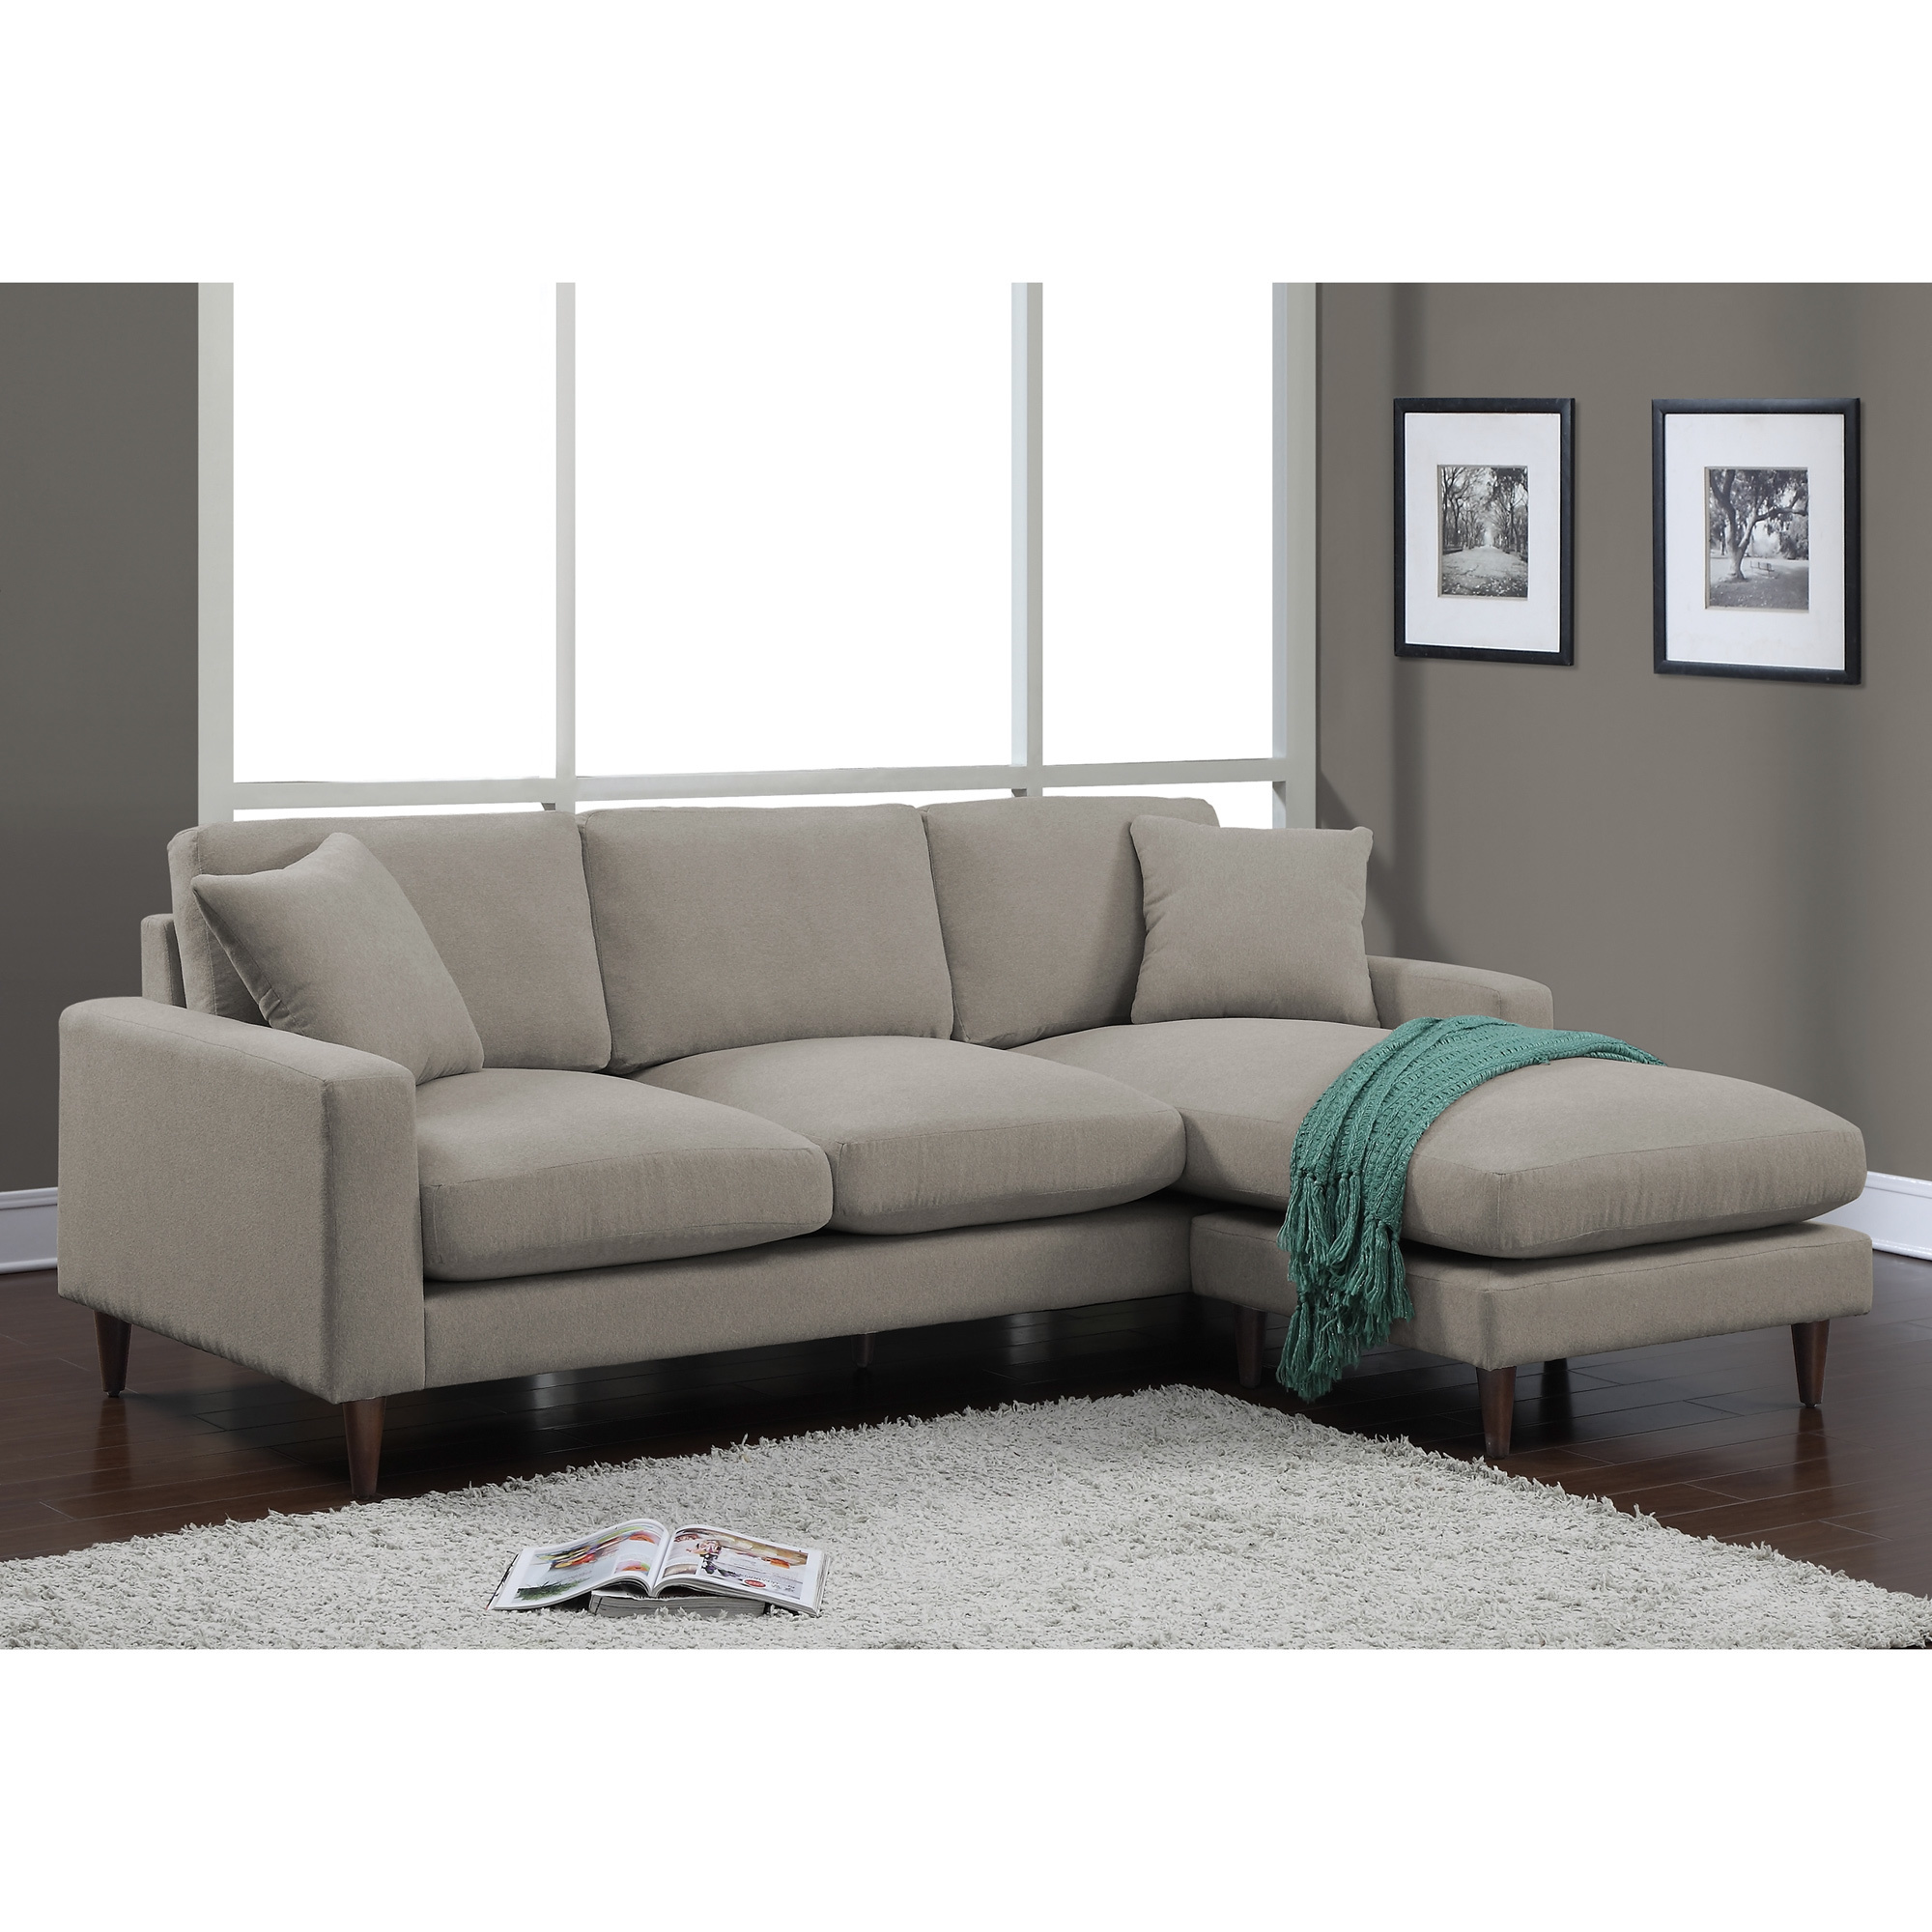 Dimensions Furniture Shaffer Grey Fabric Twopiece Sectional Sofa